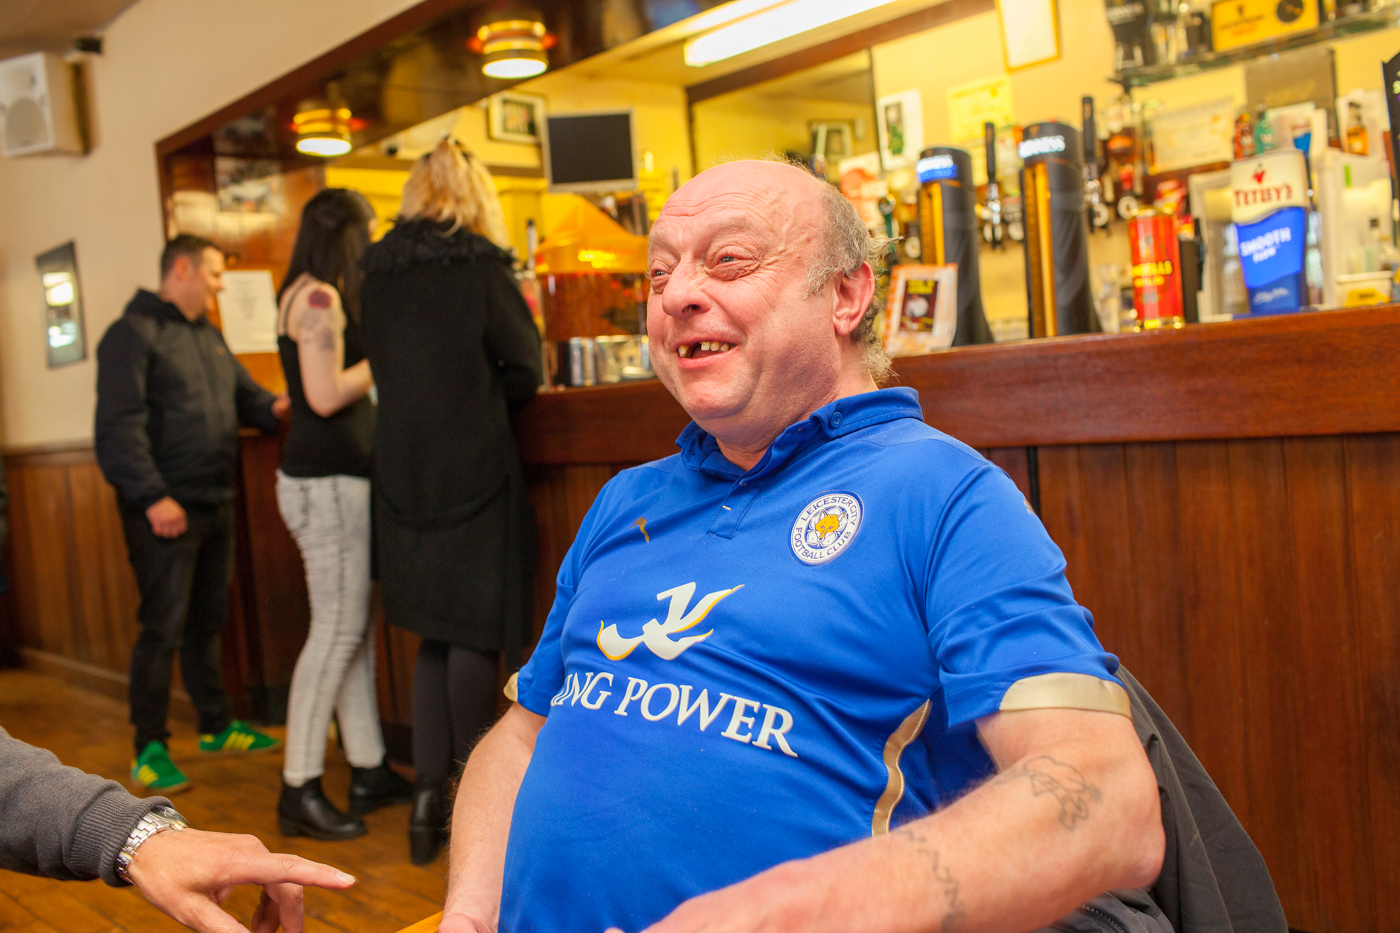 LEICESTER, UK MAY 2016Leicester city fans drinking in the West End Working Men's Club in the city.On the 2nd May 2016, Leicester City football club became champions of England for the first time in their 132 year history.Leicester has been dubbed as most multicultural diversified city in England, thanks to scores of people that have flocked the city and who have hailed from different parts of the world. According to the Leicester city council, the city has the highest number of immigrants who have sought both temporary and permanent residence in England. Majority of these immigrants are people who have left their home countries in pursuit of job opportunities in England.  Photo by Peter Dench/Getty Images Assignment for ESPN